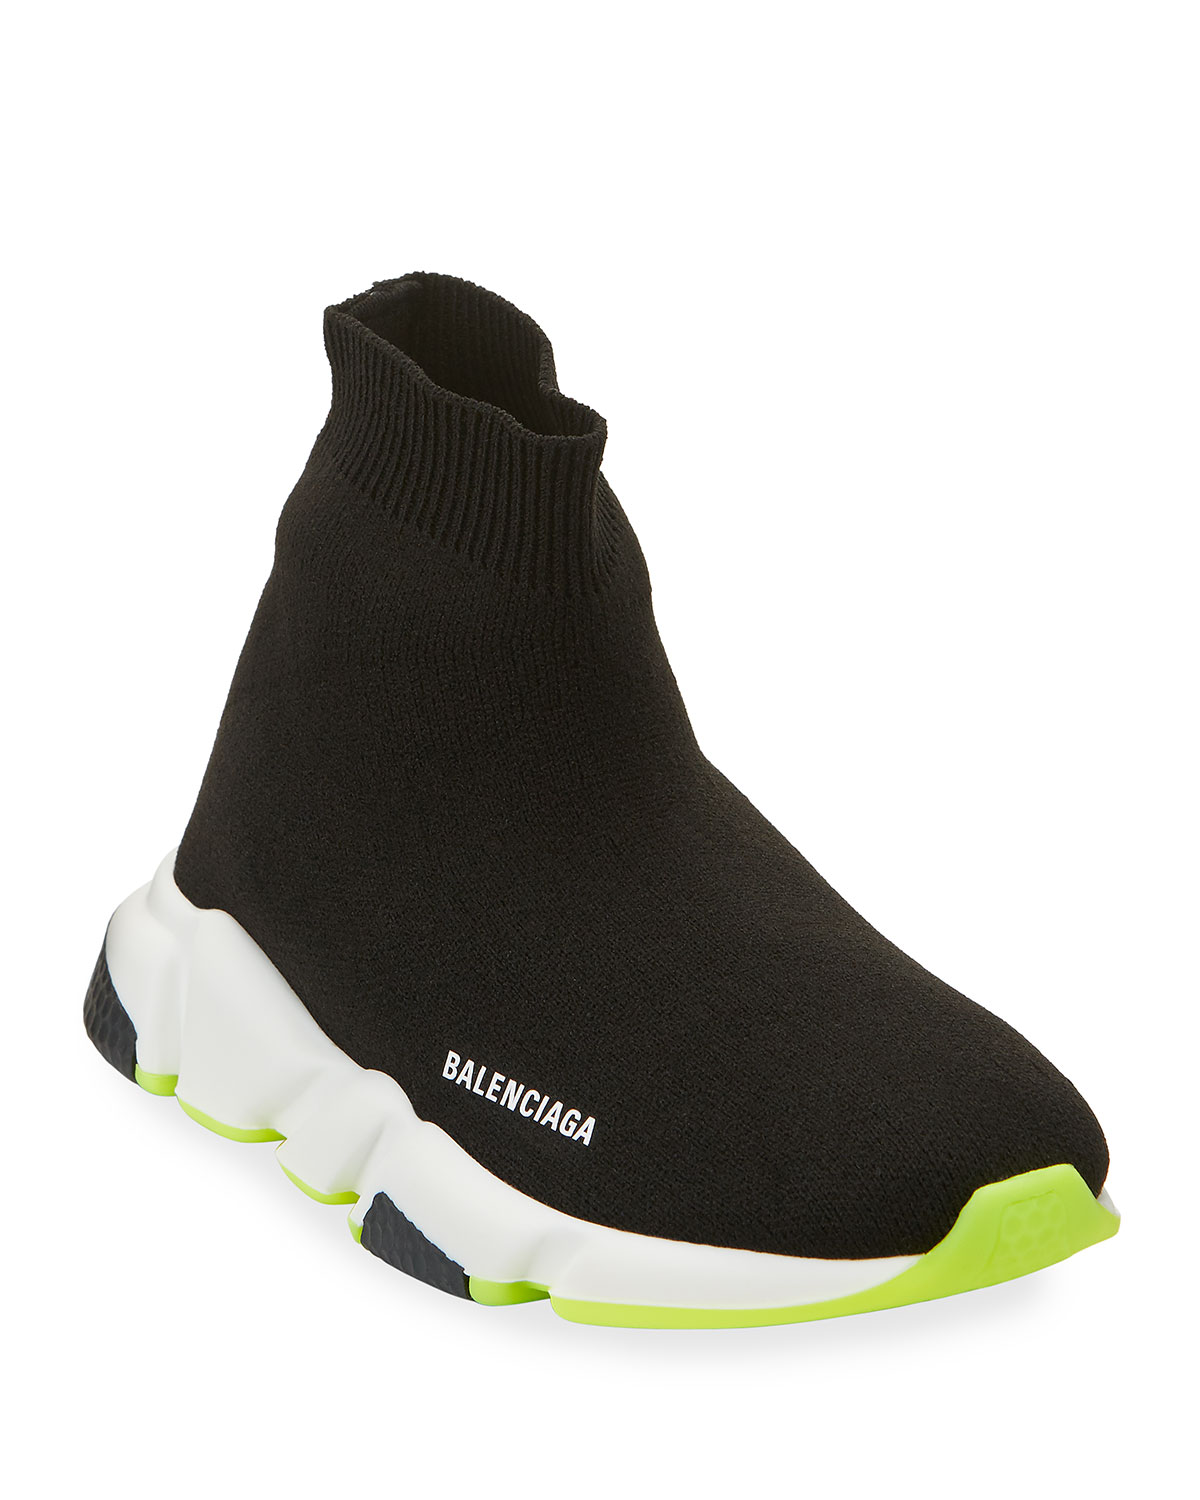 Balenciaga Speed Sock Sneakers with Tricolor Sole, Toddler/Kids